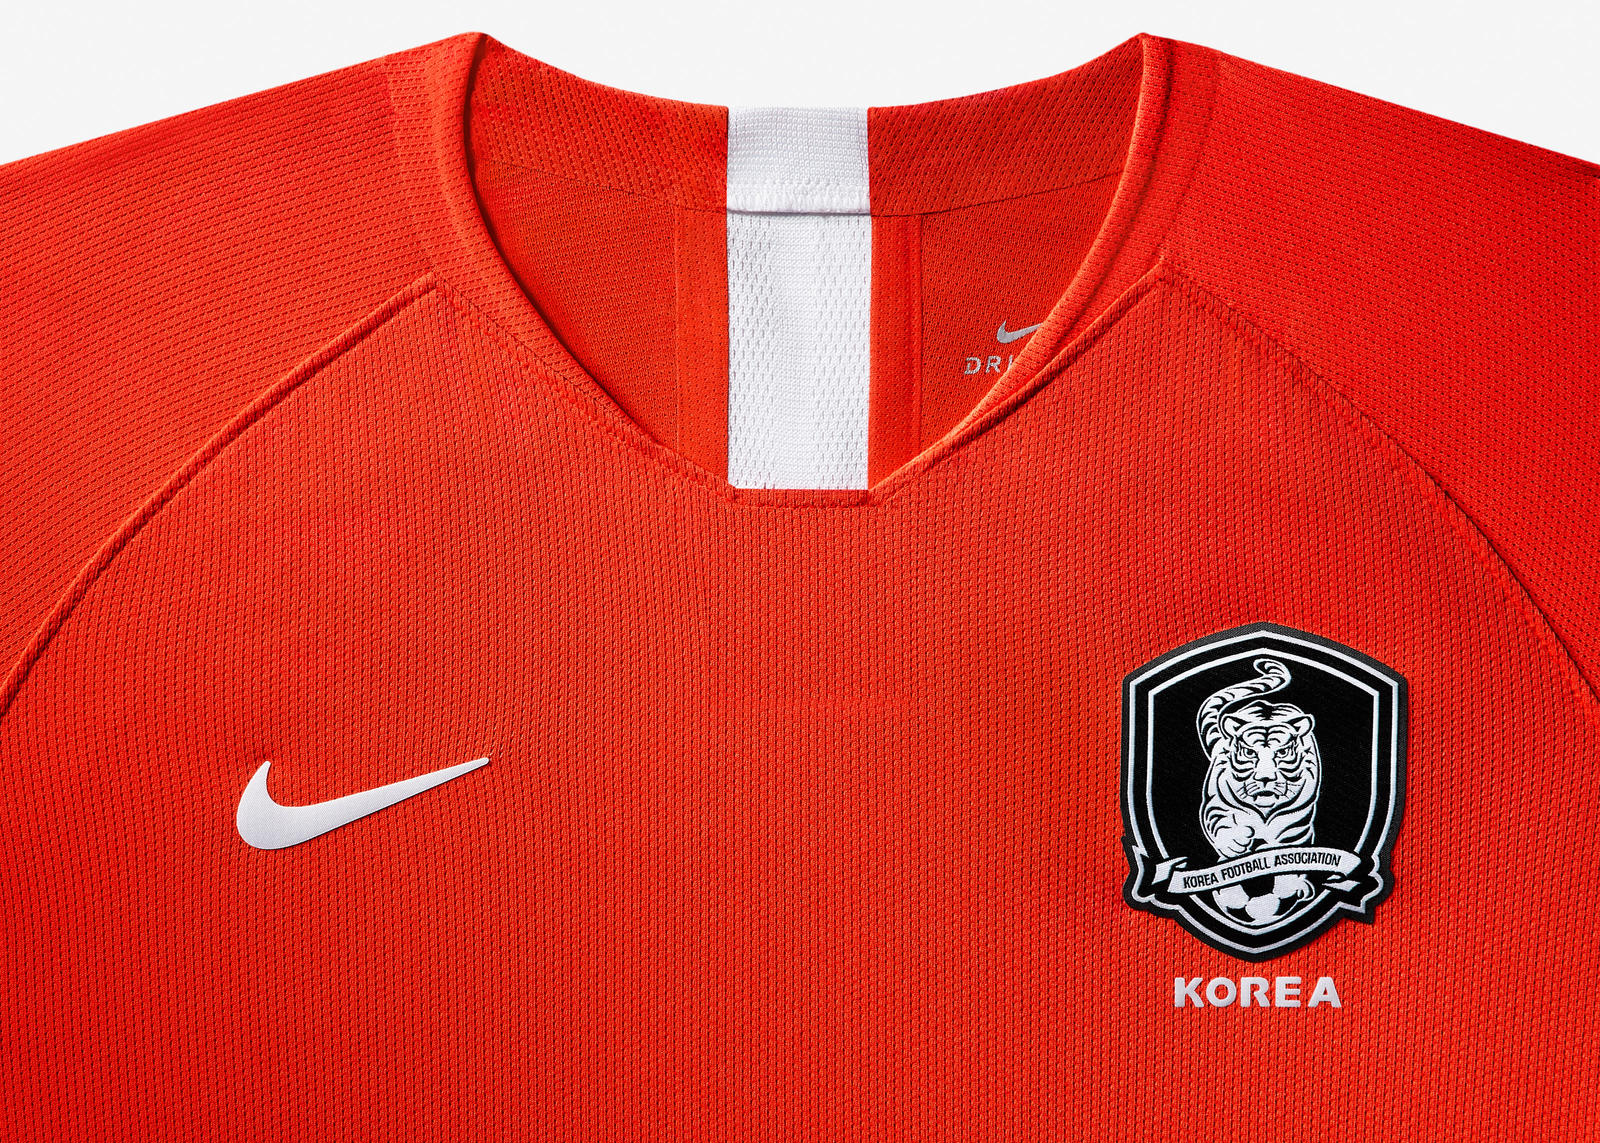 South Korea National Team Kit 2019 2